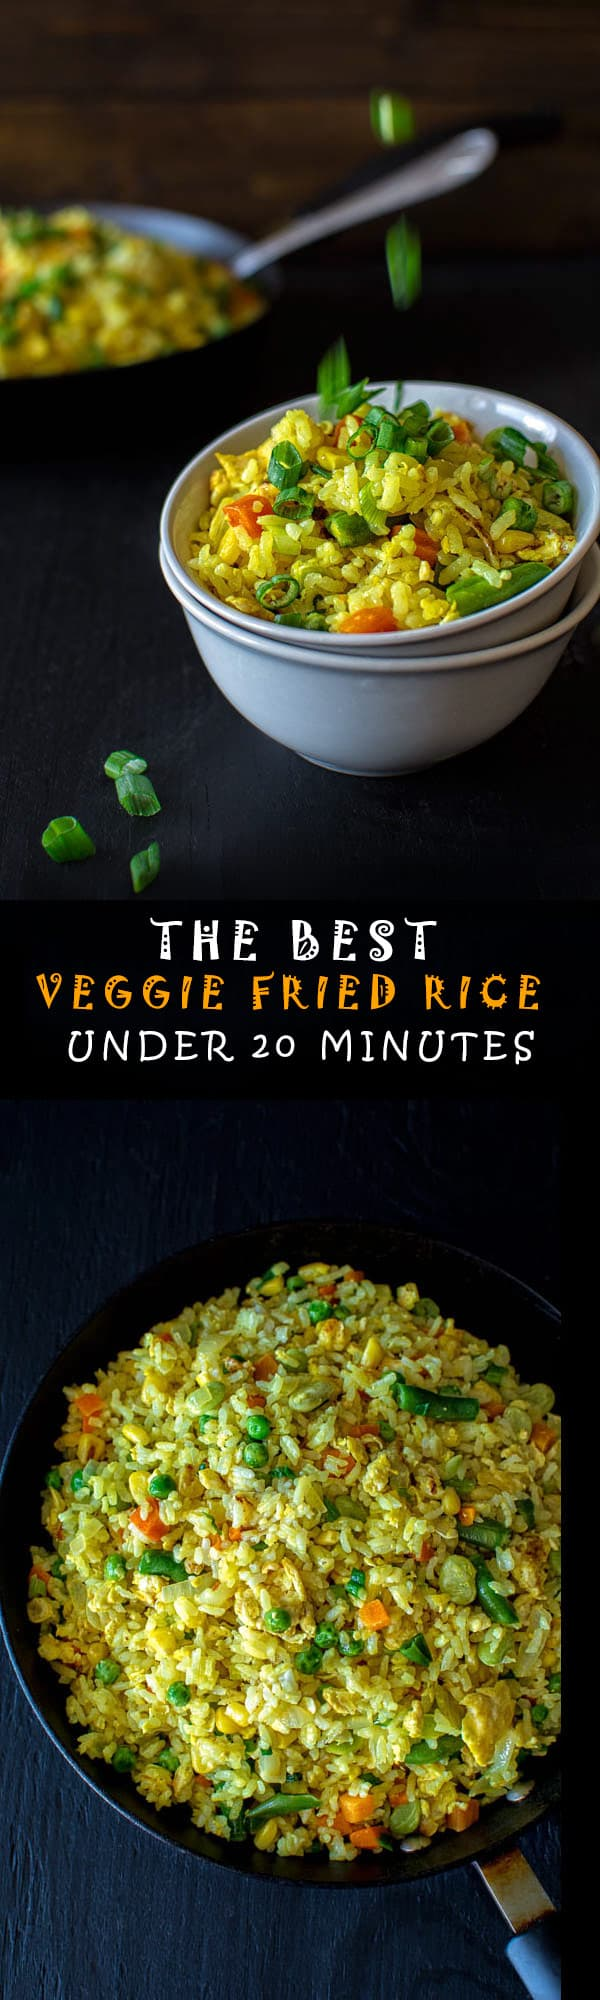 This is hands down the best fried rice recipe you will find. I have tried many and this one is a winner by far. Ready in 20 minutes! ❤ COOKTORIA.COM